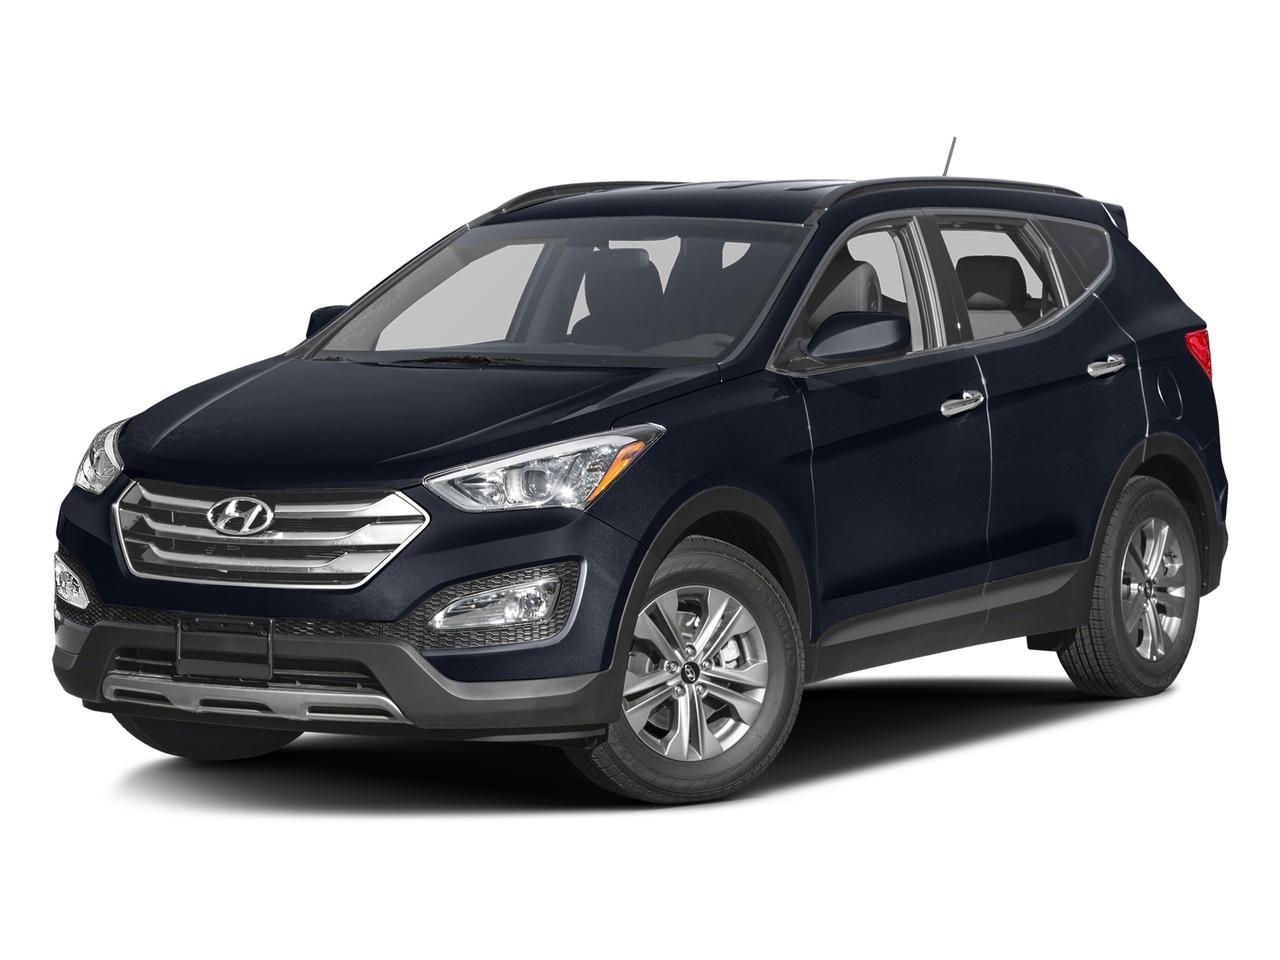 2016 Hyundai Santa Fe Sport Vehicle Photo in CHARLOTTE, NC 28212